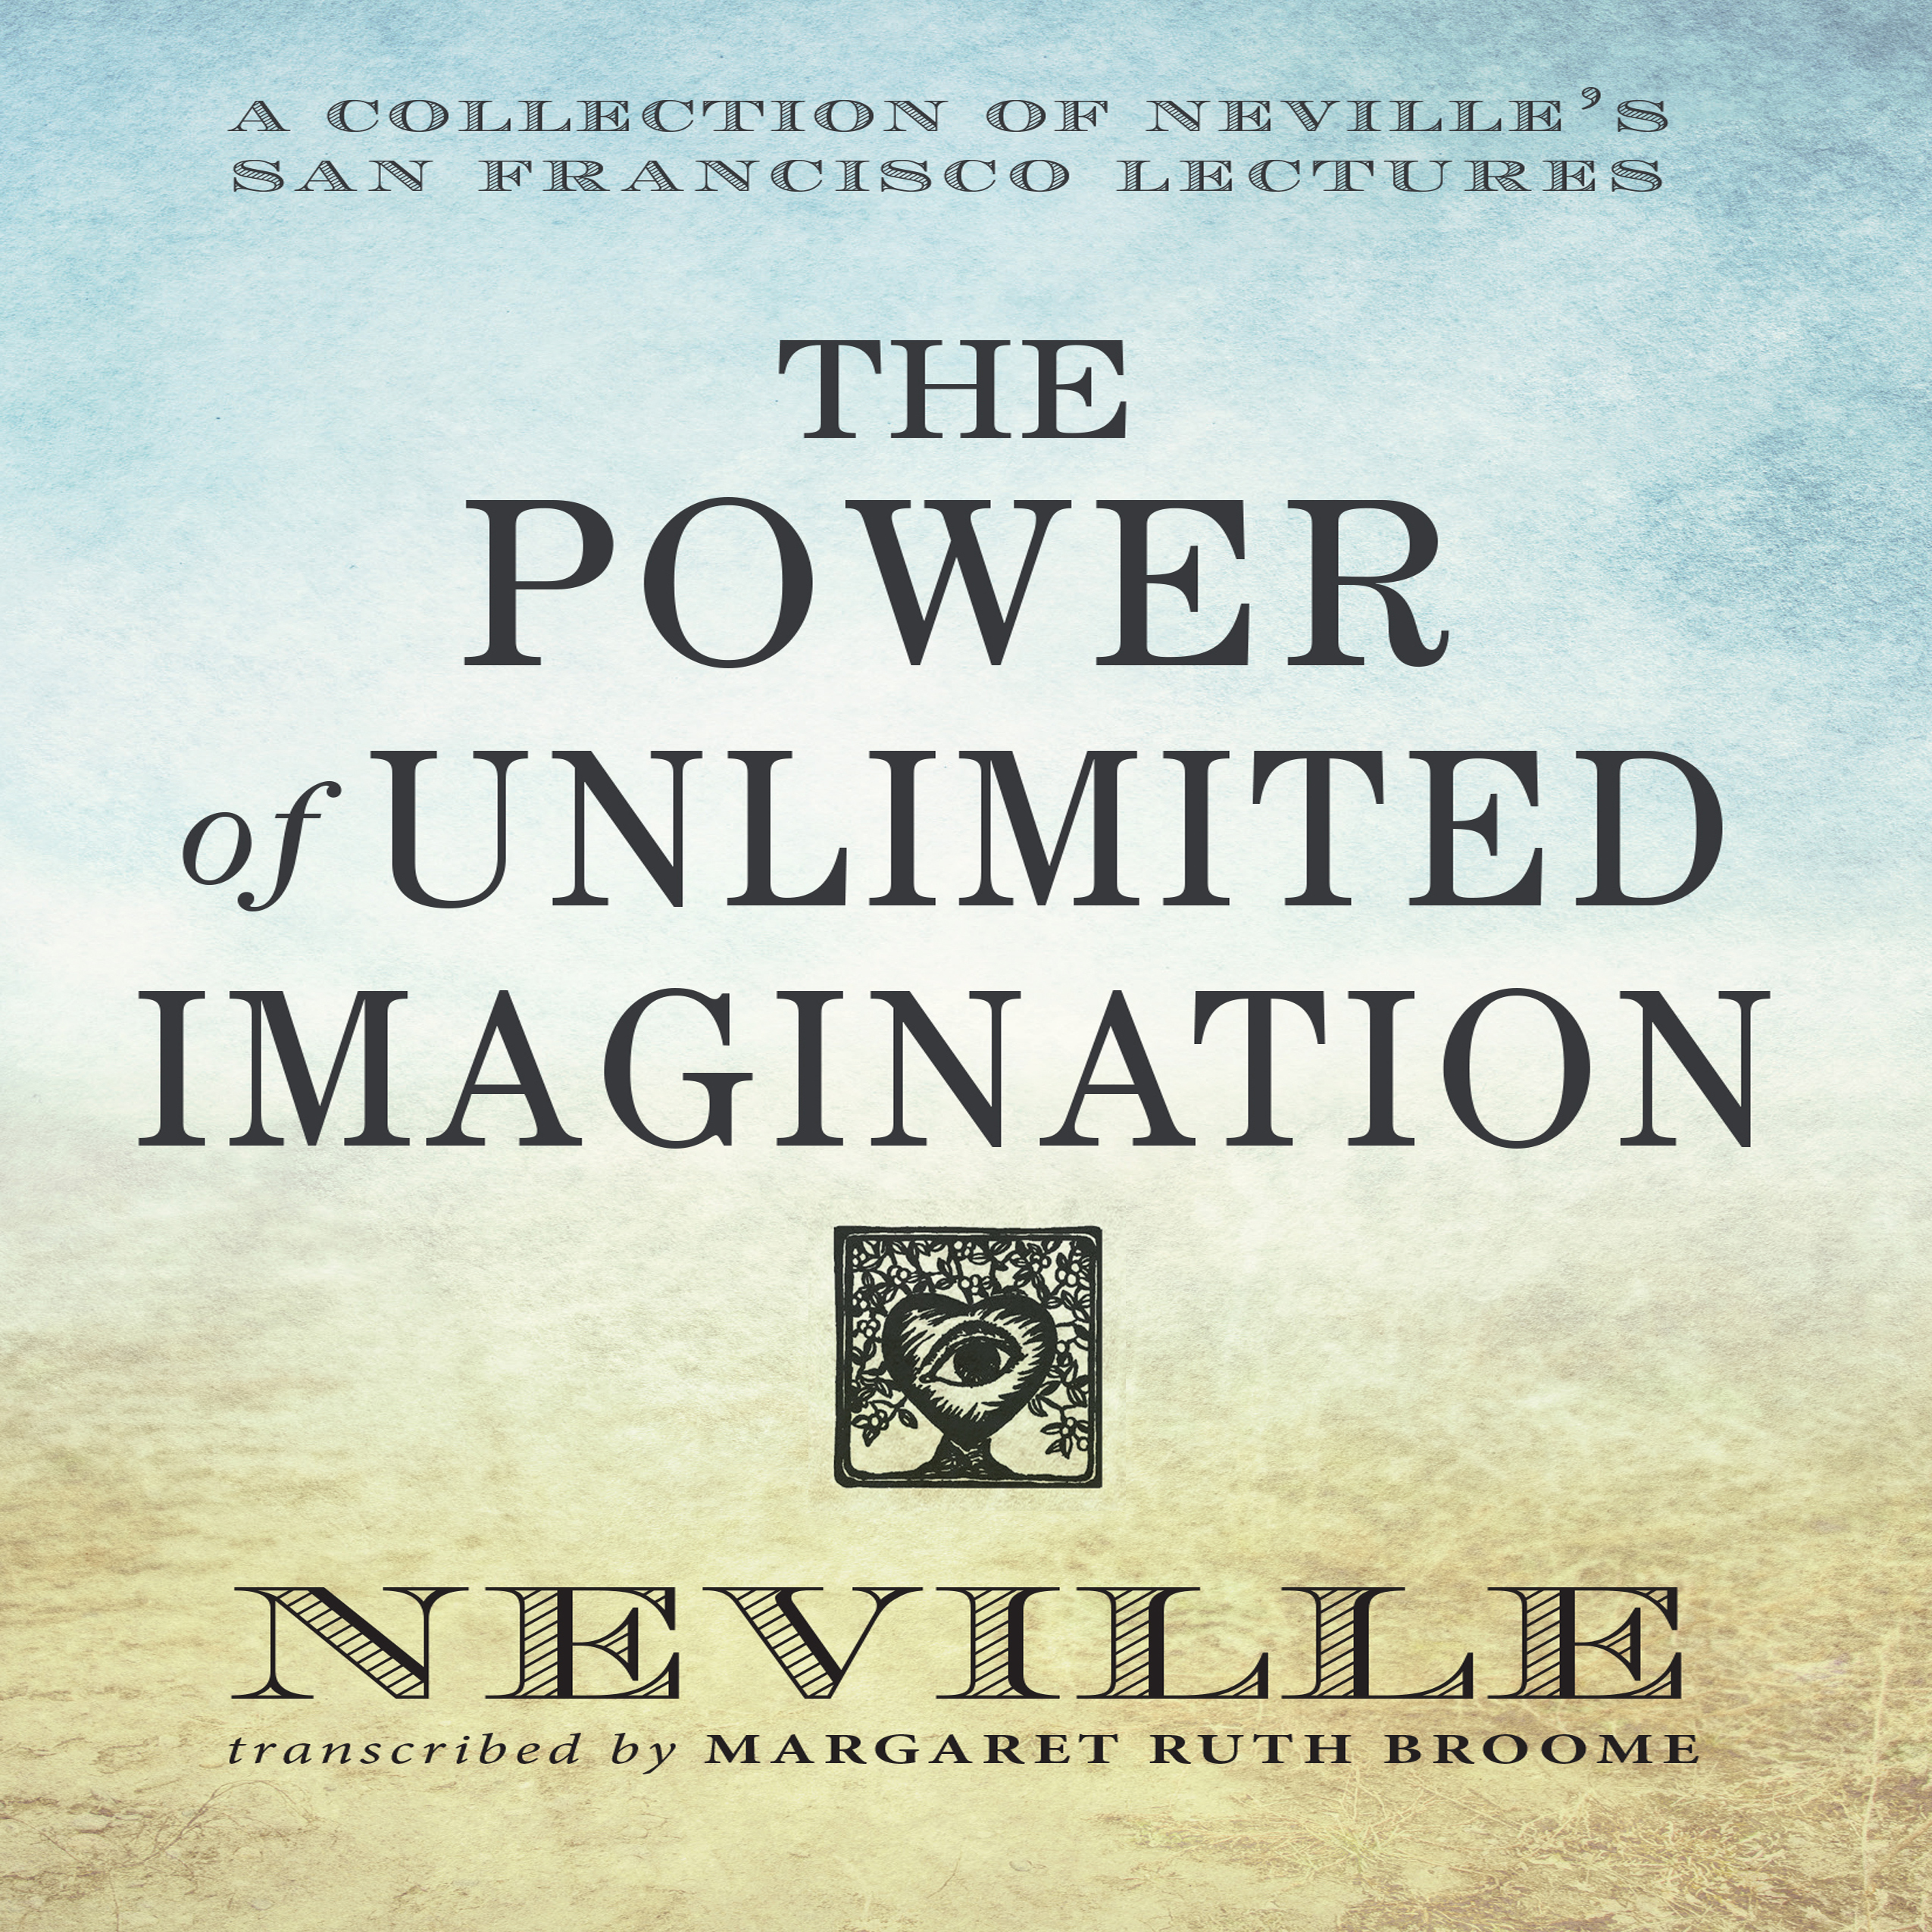 Printable The Power of Unlimited Imagination: A Collection of Neville's San Francisco Lectures Audiobook Cover Art